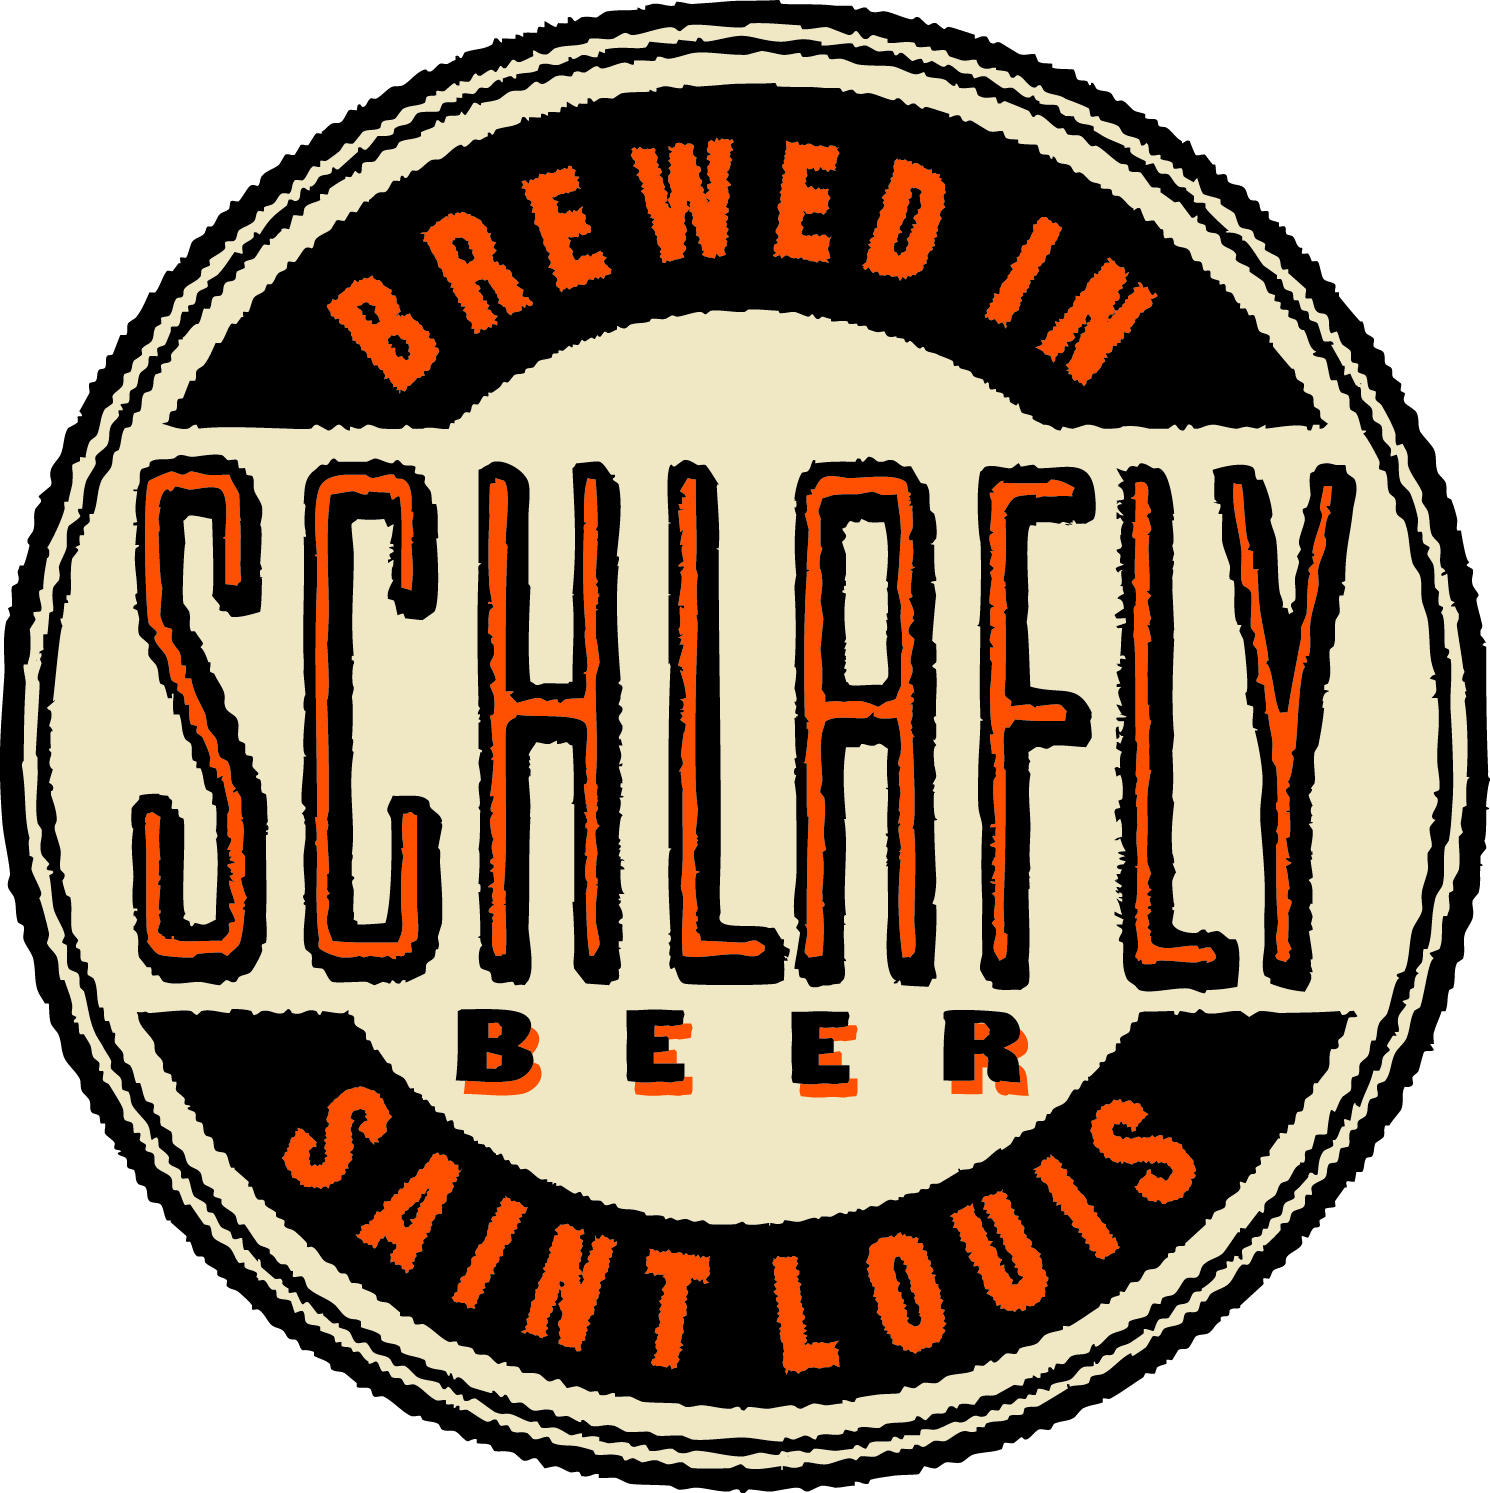 schlafly3color.jpg